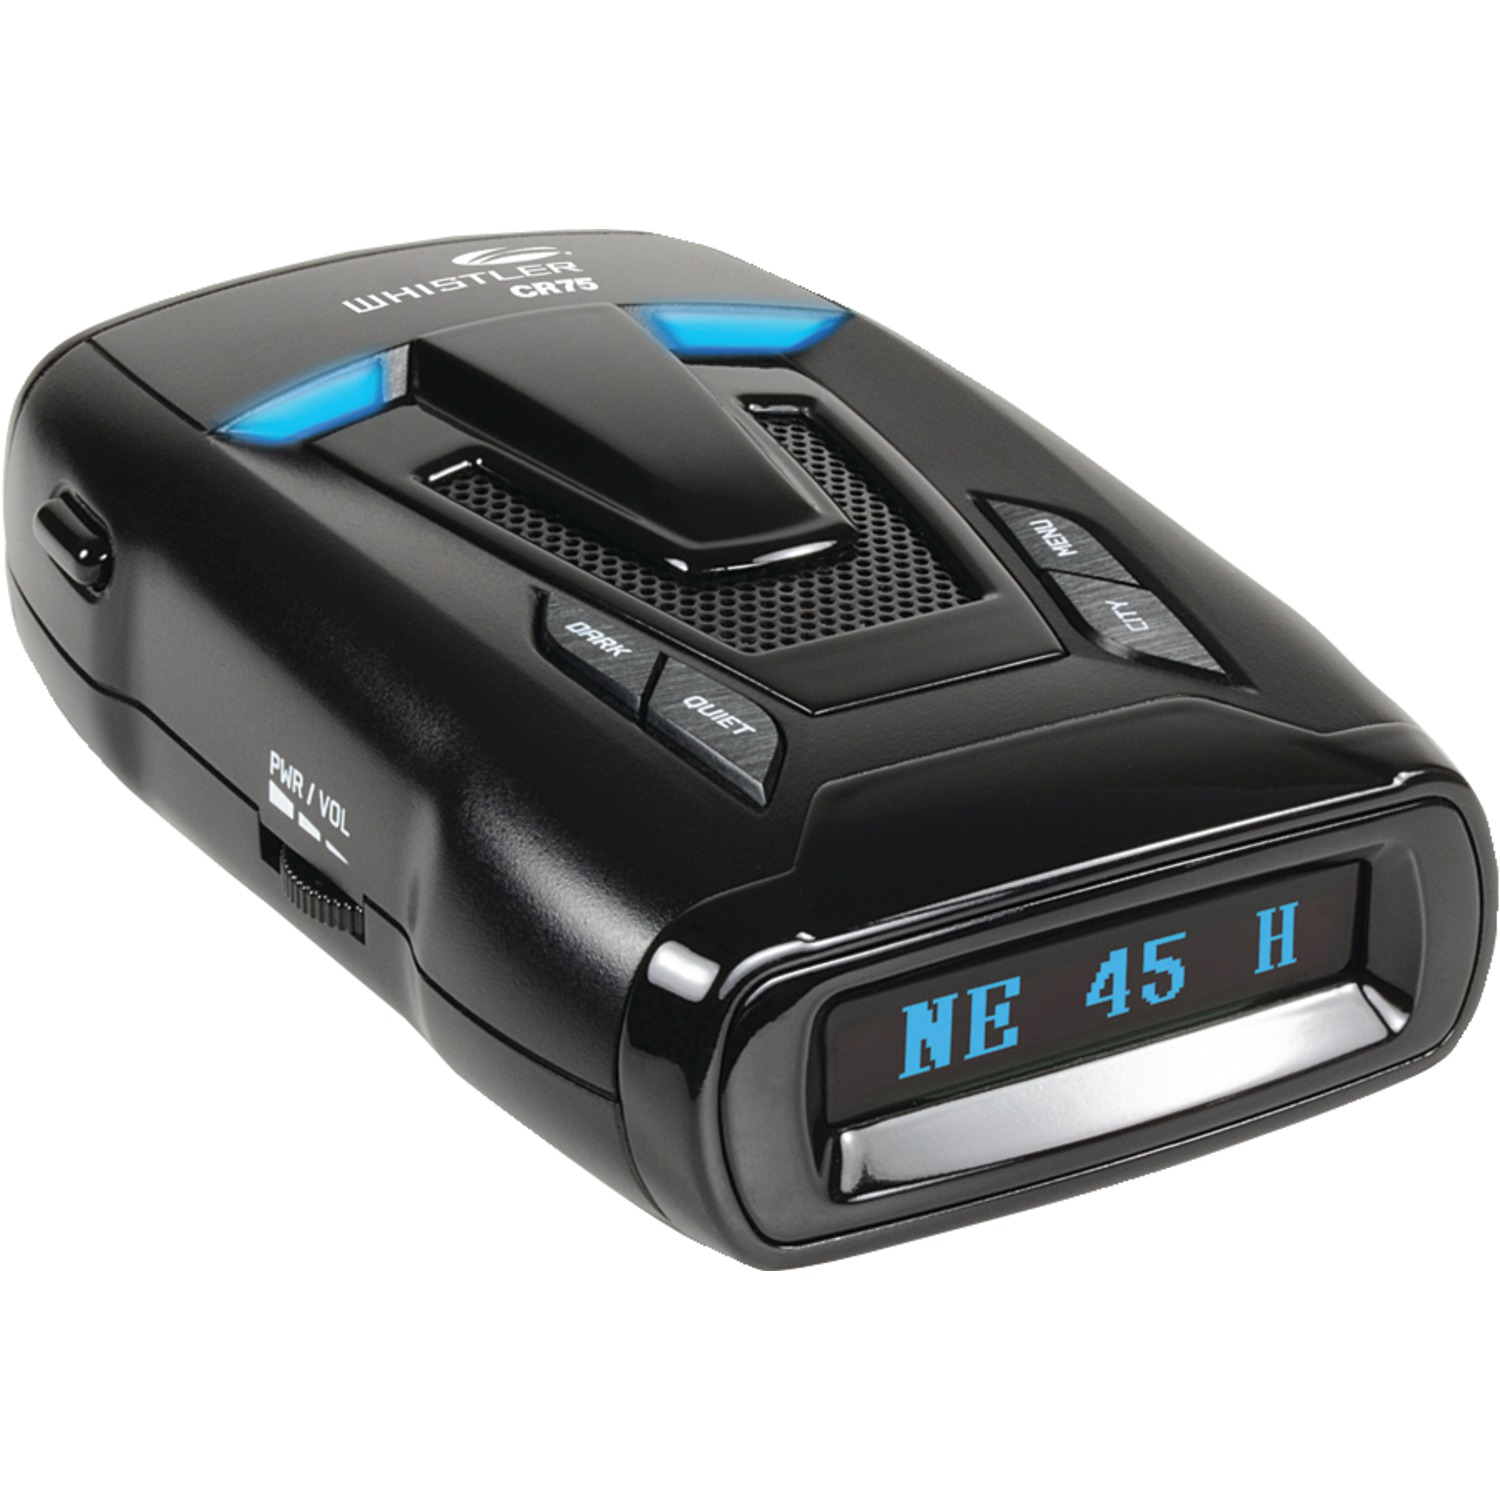 Shop a wide selection of Radar Detectors from Escort, Whistler & more! Newegg offers the best prices, fast shipping and top-rated customer service! Shop Exclusive Deals on our Mobile App! Email Deals. Our latest email deals. Daily Deals. Suction Mount Radar Detector Bracket - Escort ix x50 X70 S Parts: Products have a